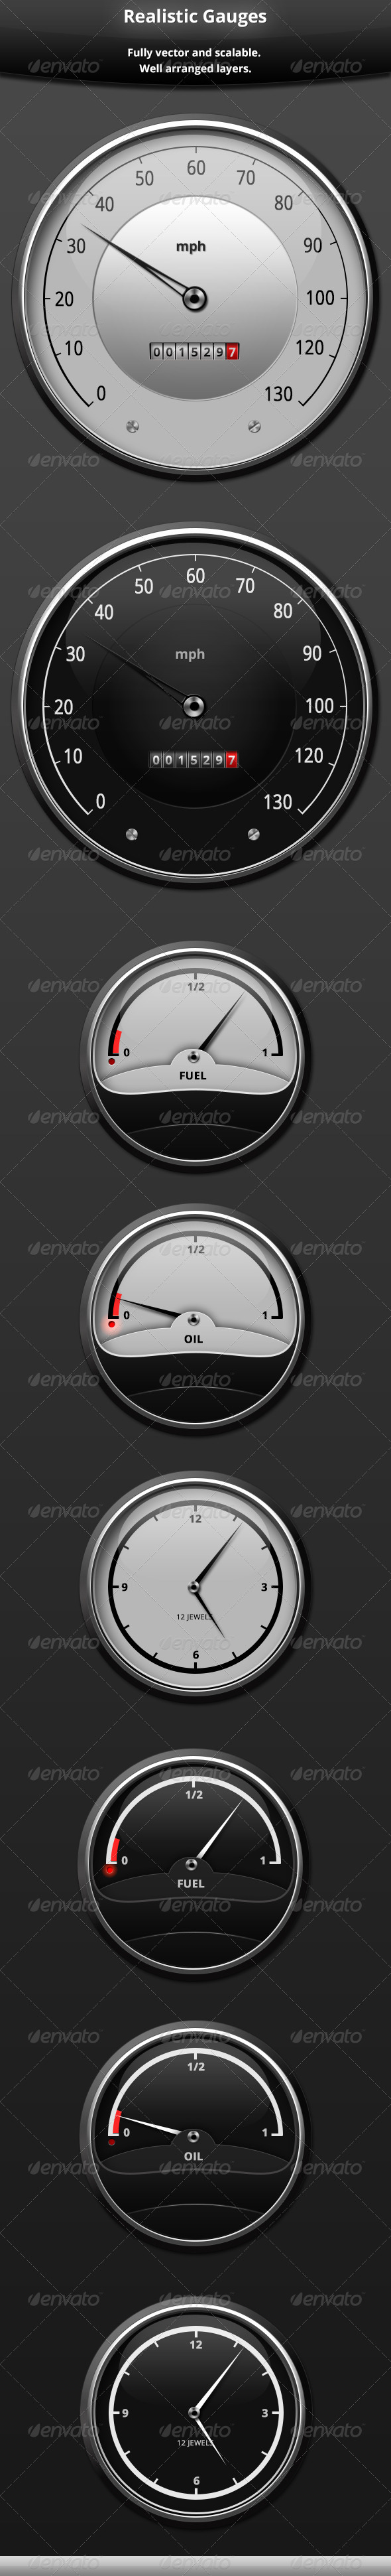 Realistic Gauges - Technology Isolated Objects